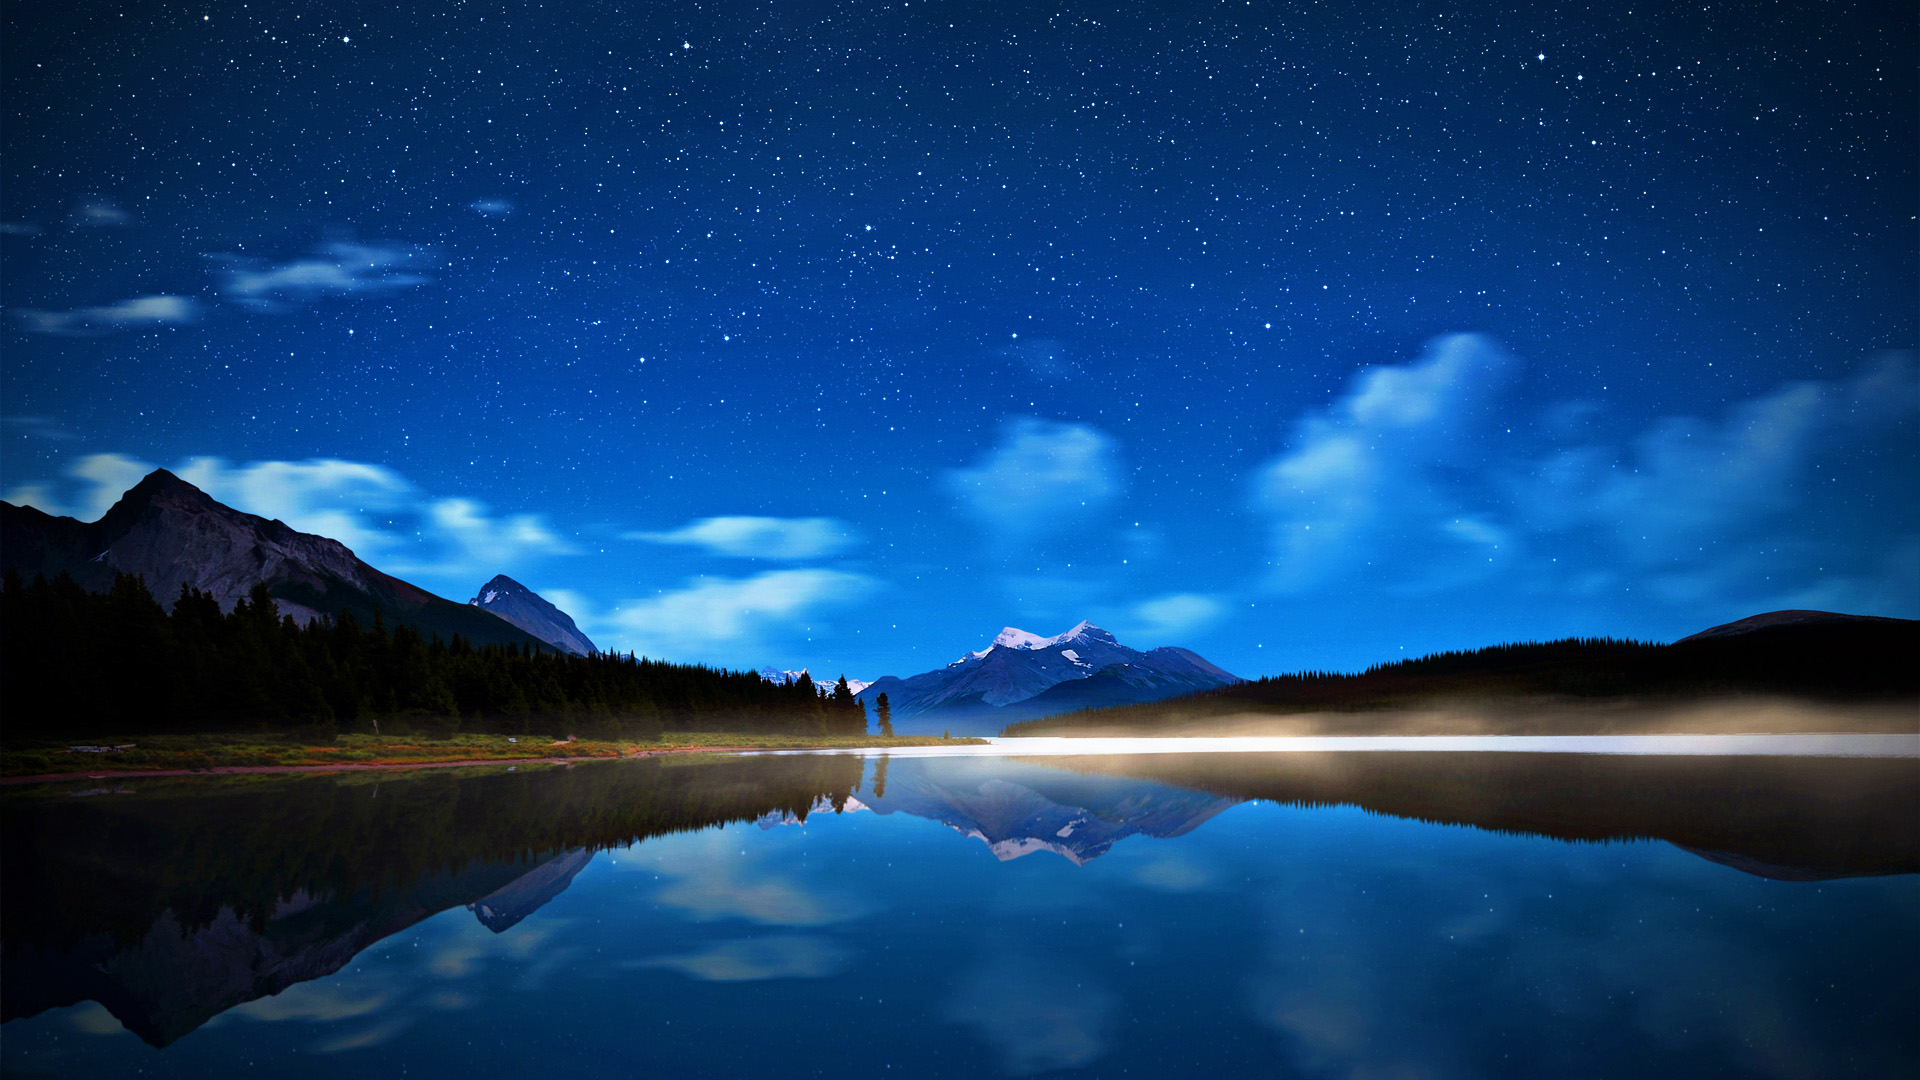 Beautiful Night Sky Wallpaper 46263